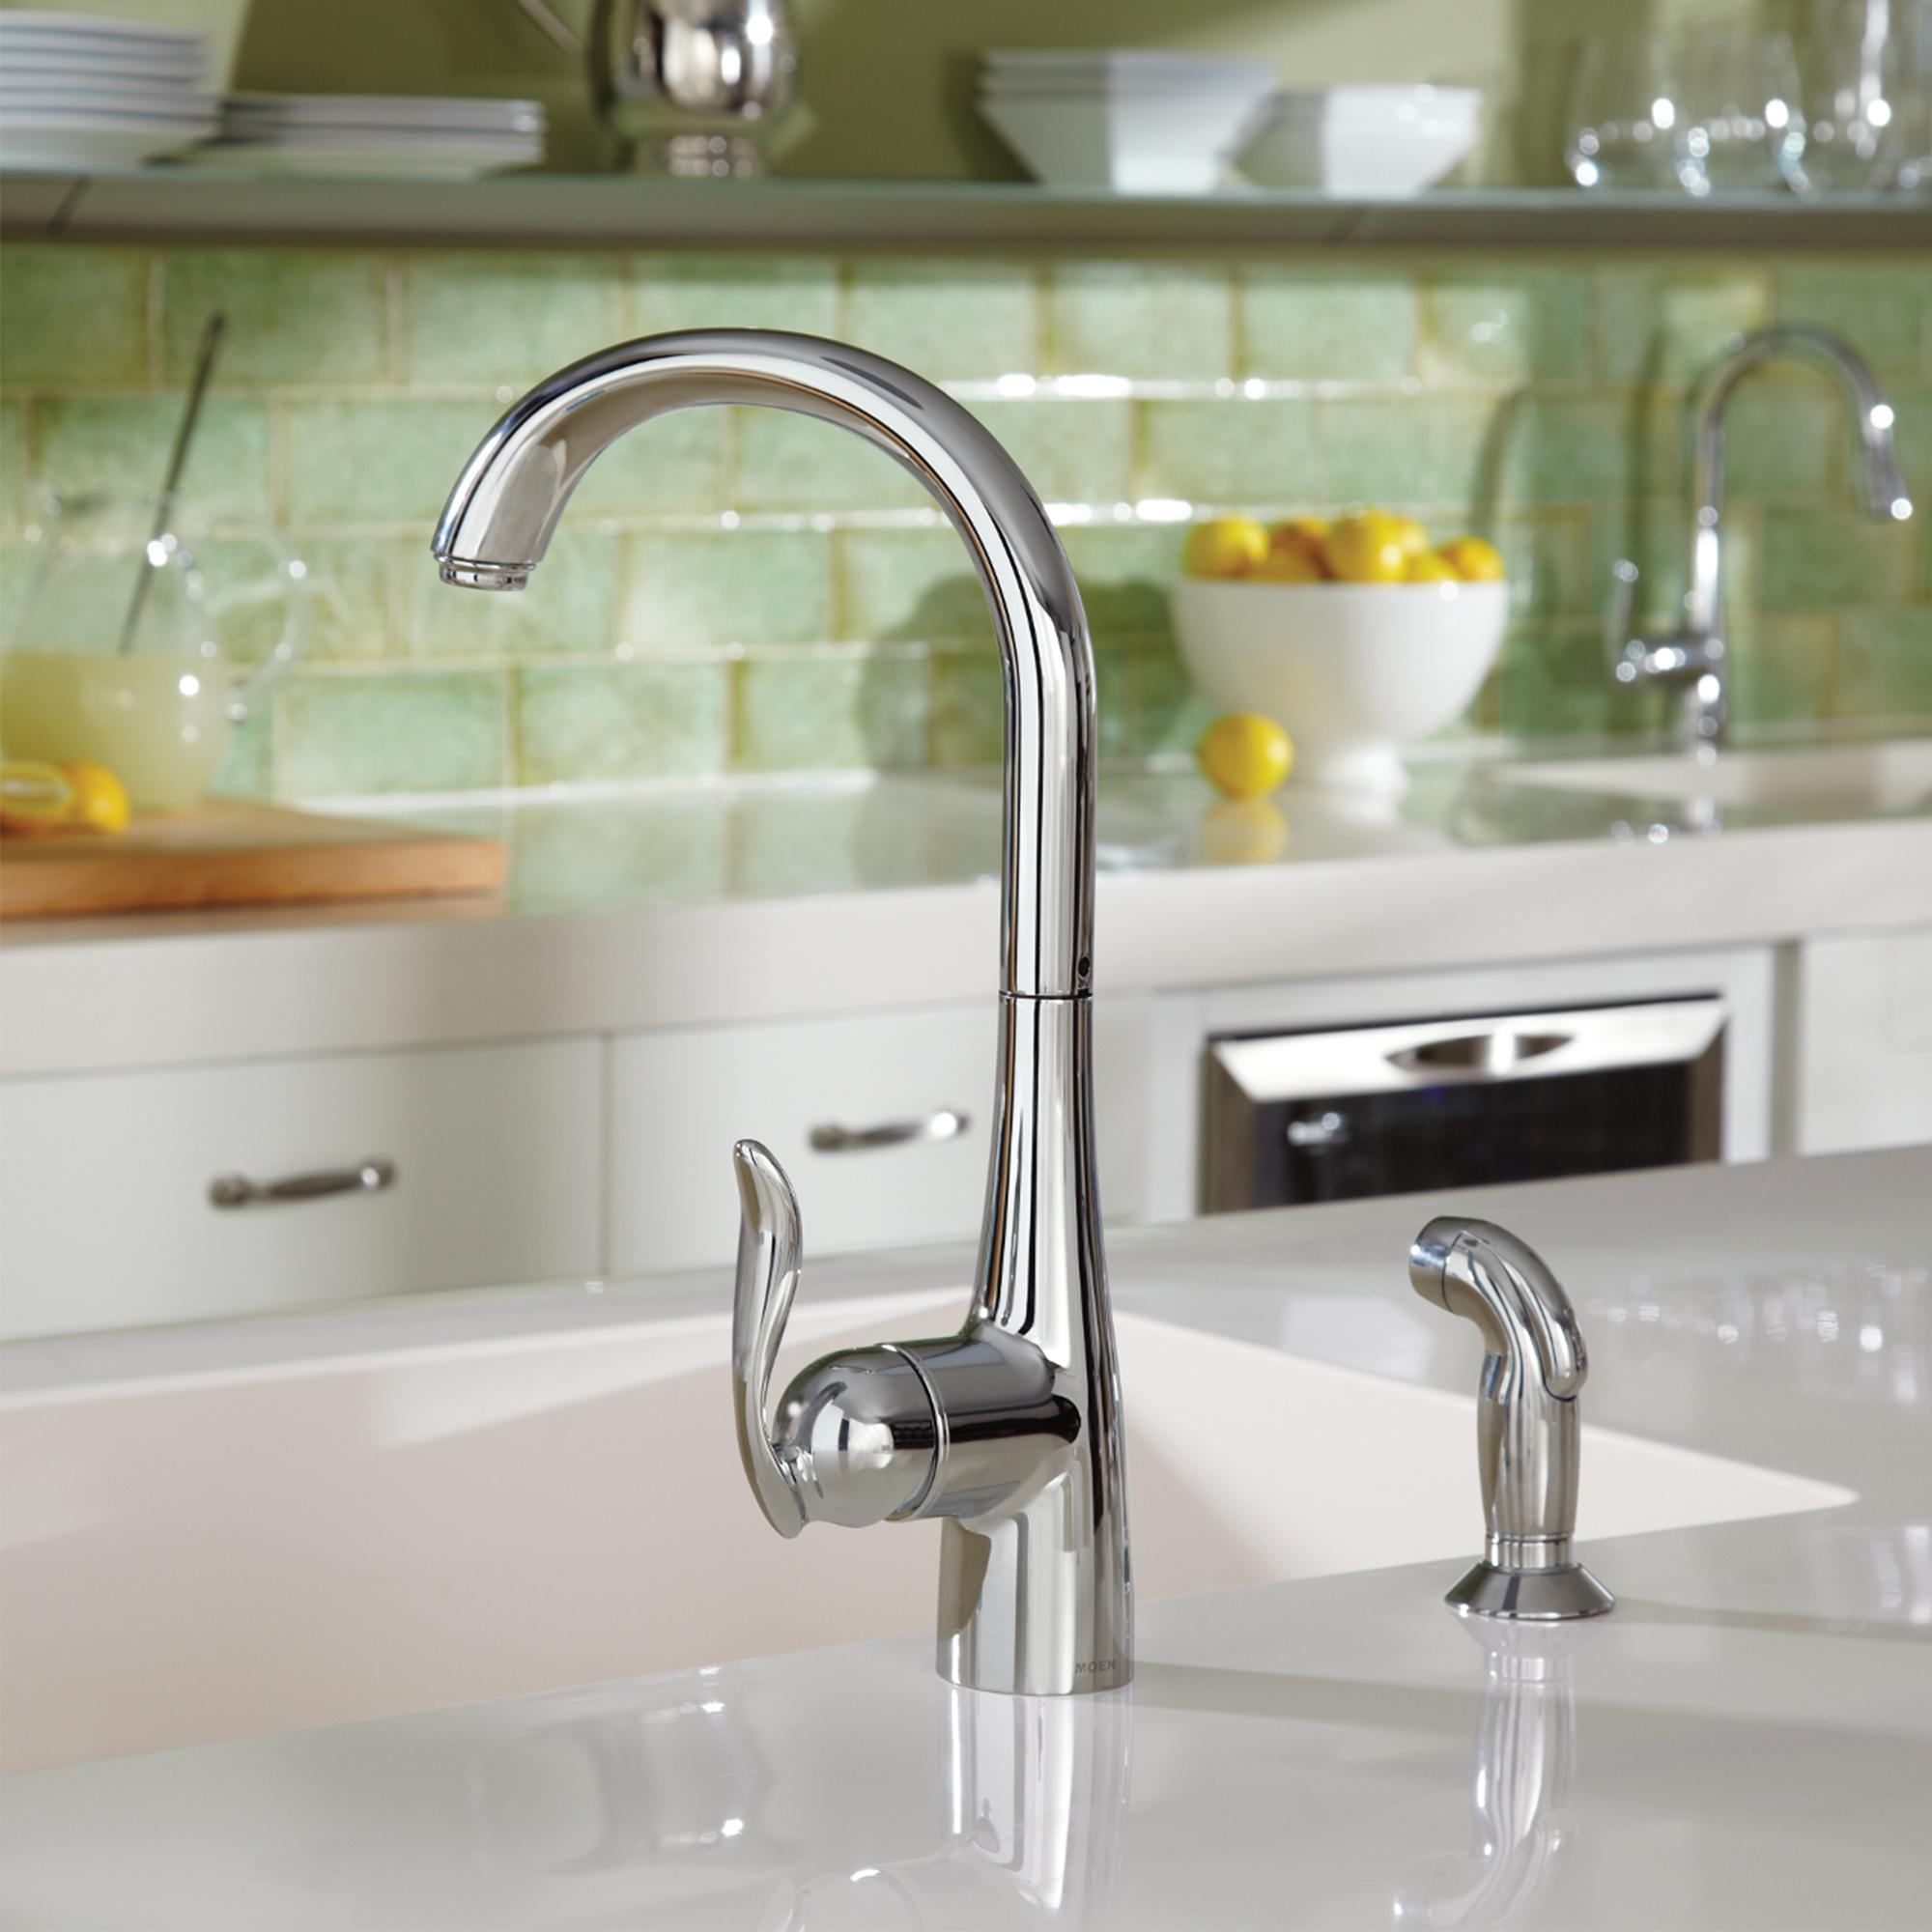 Moen Kitchen Faucet Lever Handle Comes Up